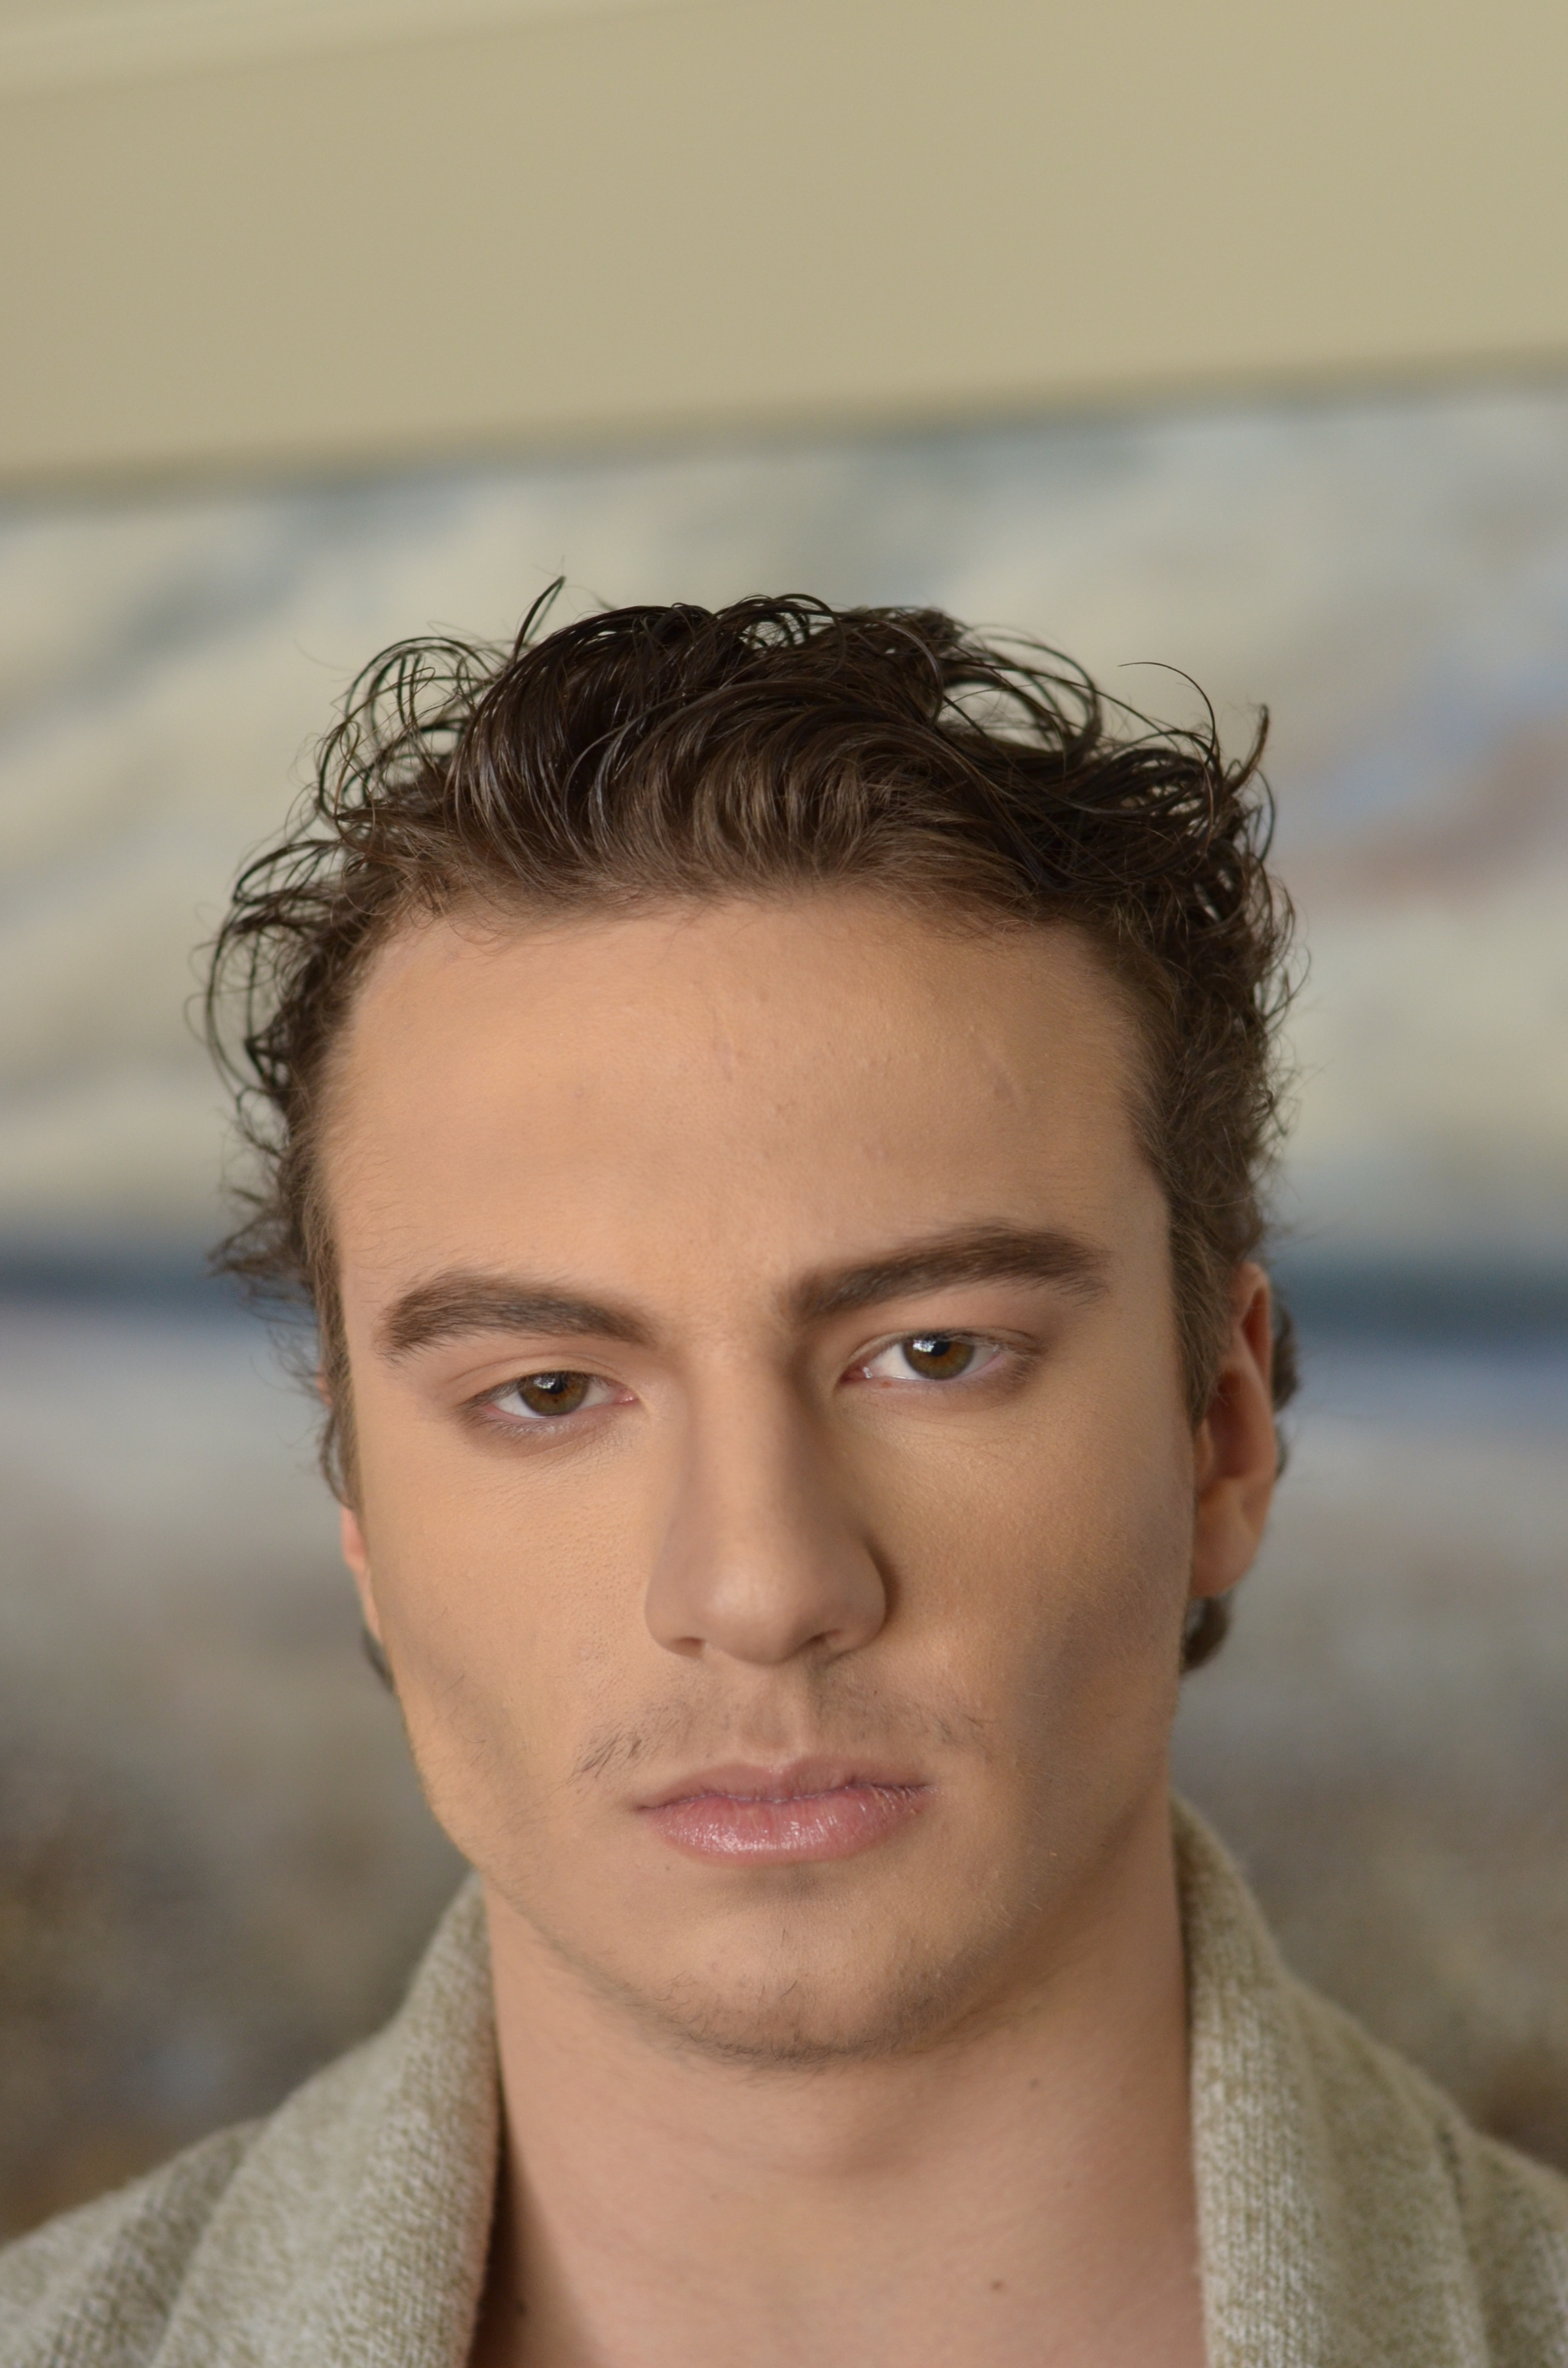 after -male makeup